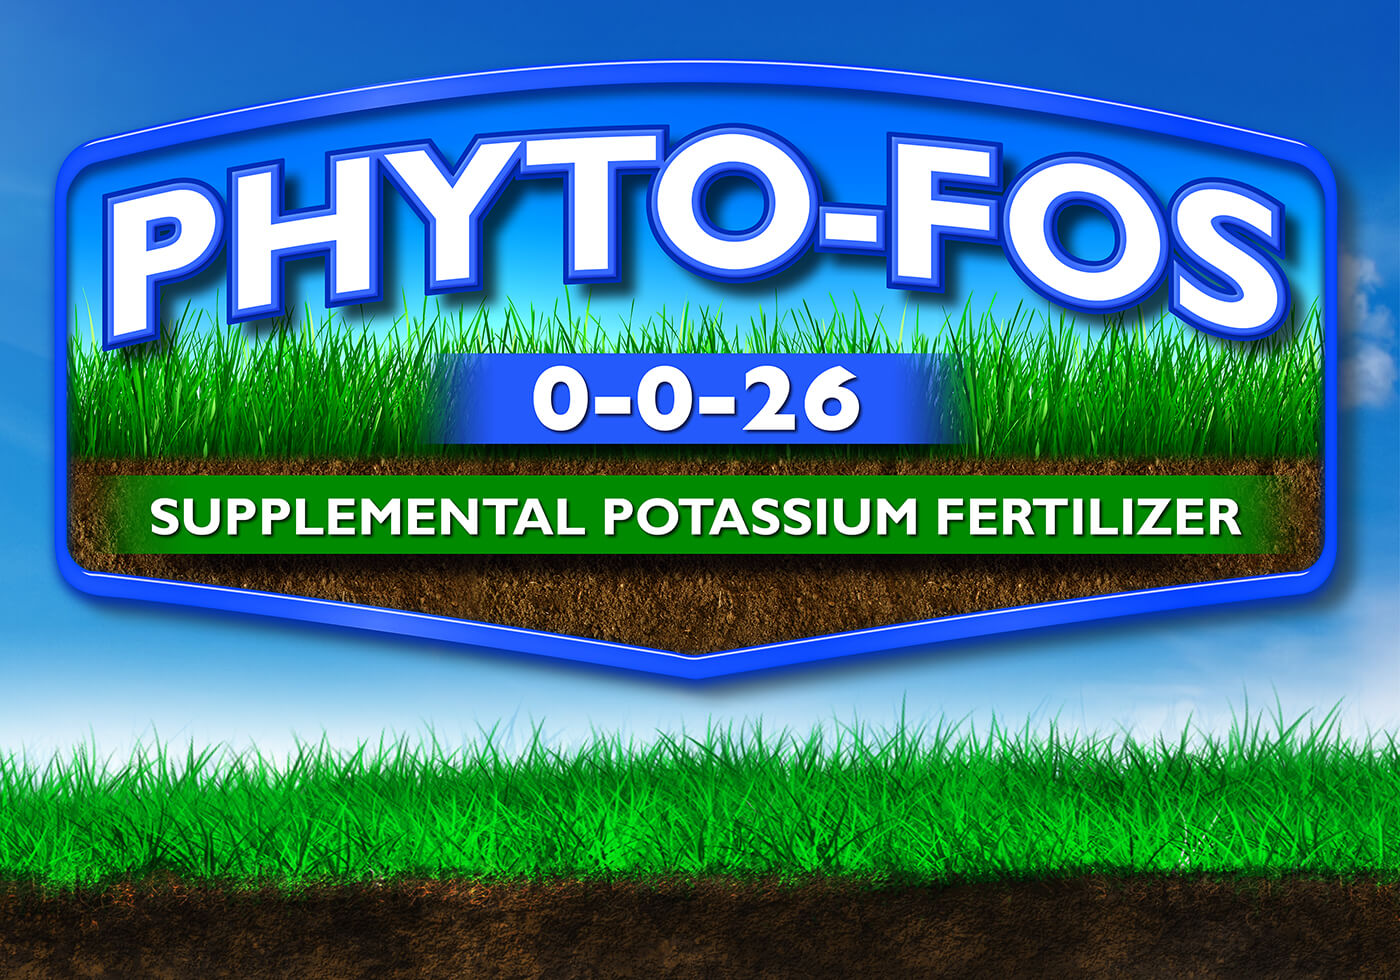 large blue phyto fos 0-0-26 logo supplemental potassium fertilizer over blue sky background grass and dirt